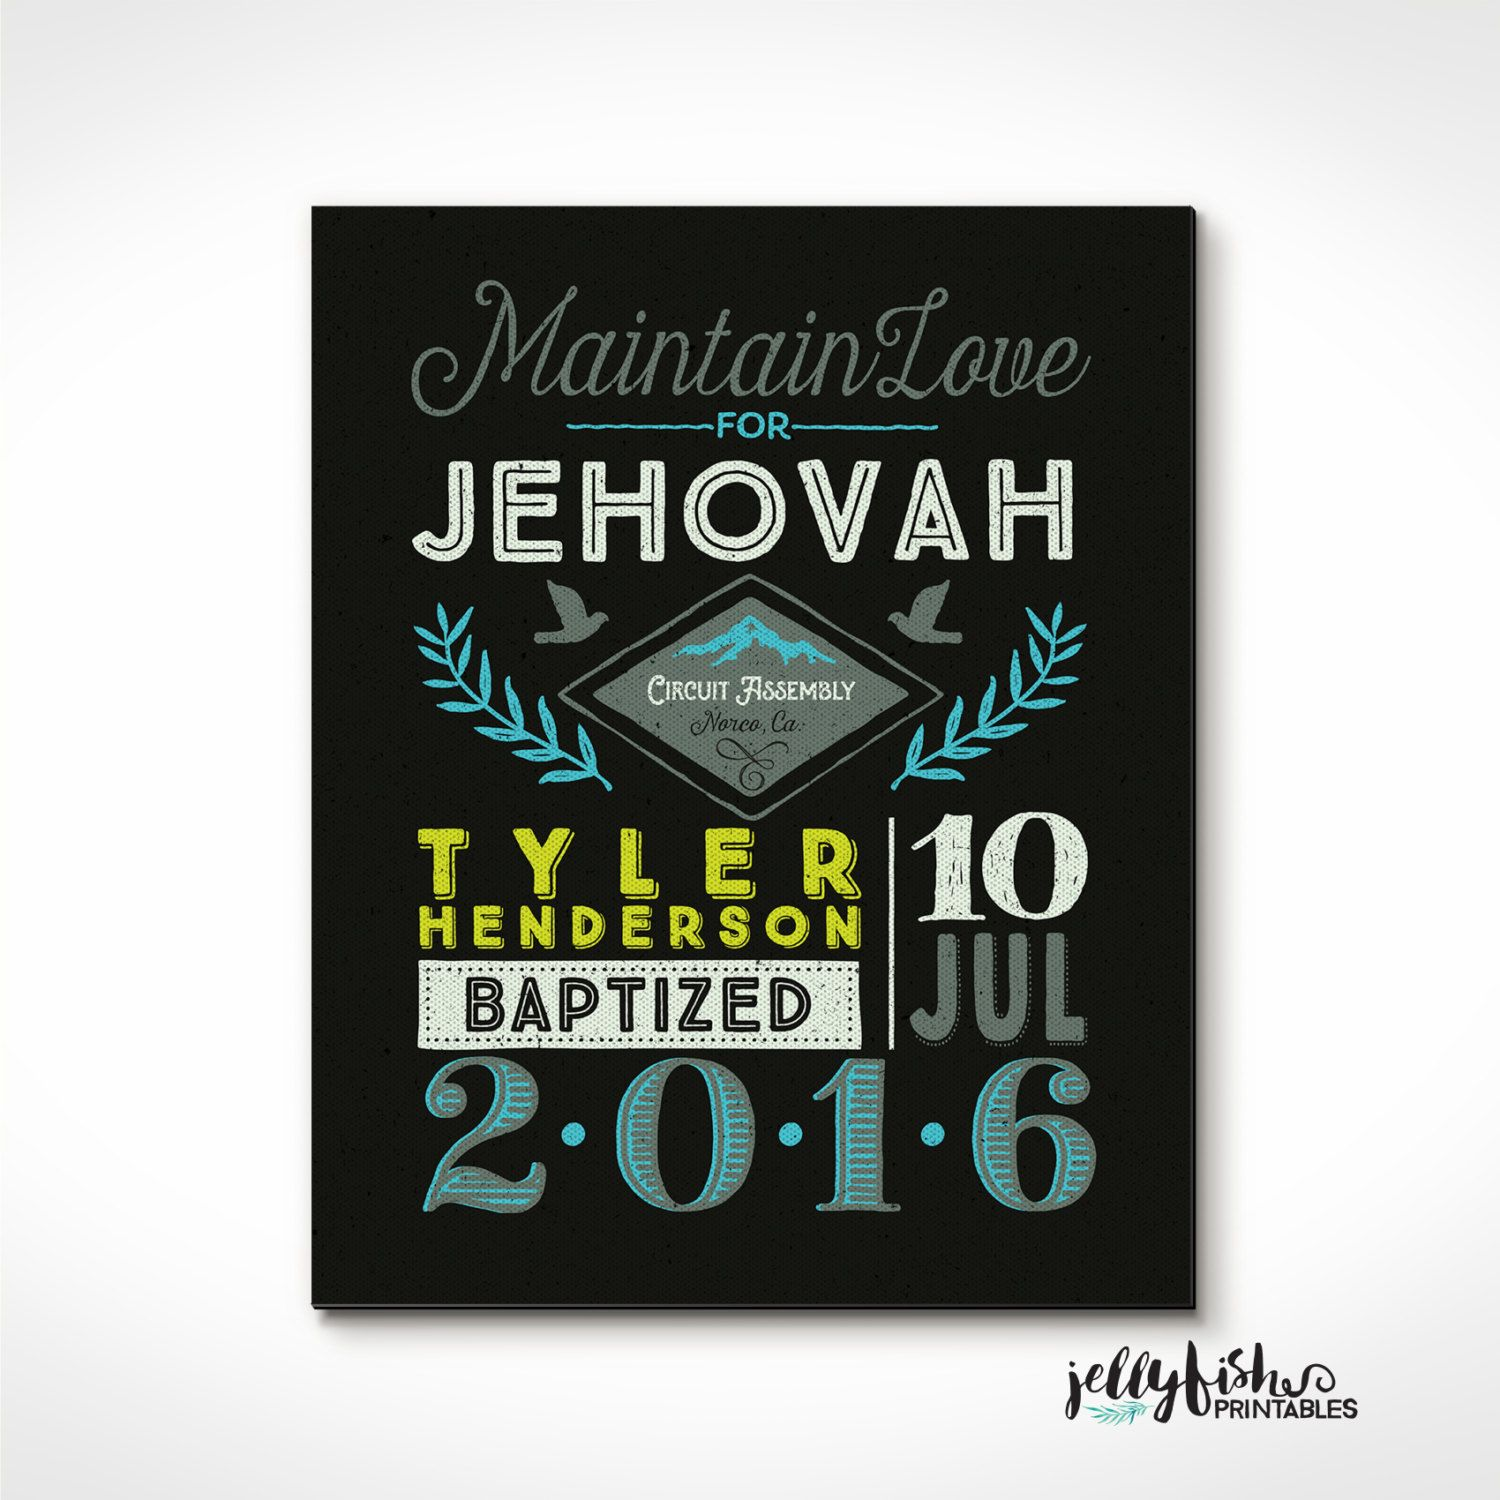 Retro Style Jw Baptism Print Keepsake For Jehovahs Witnesses Location Date Name Assembly